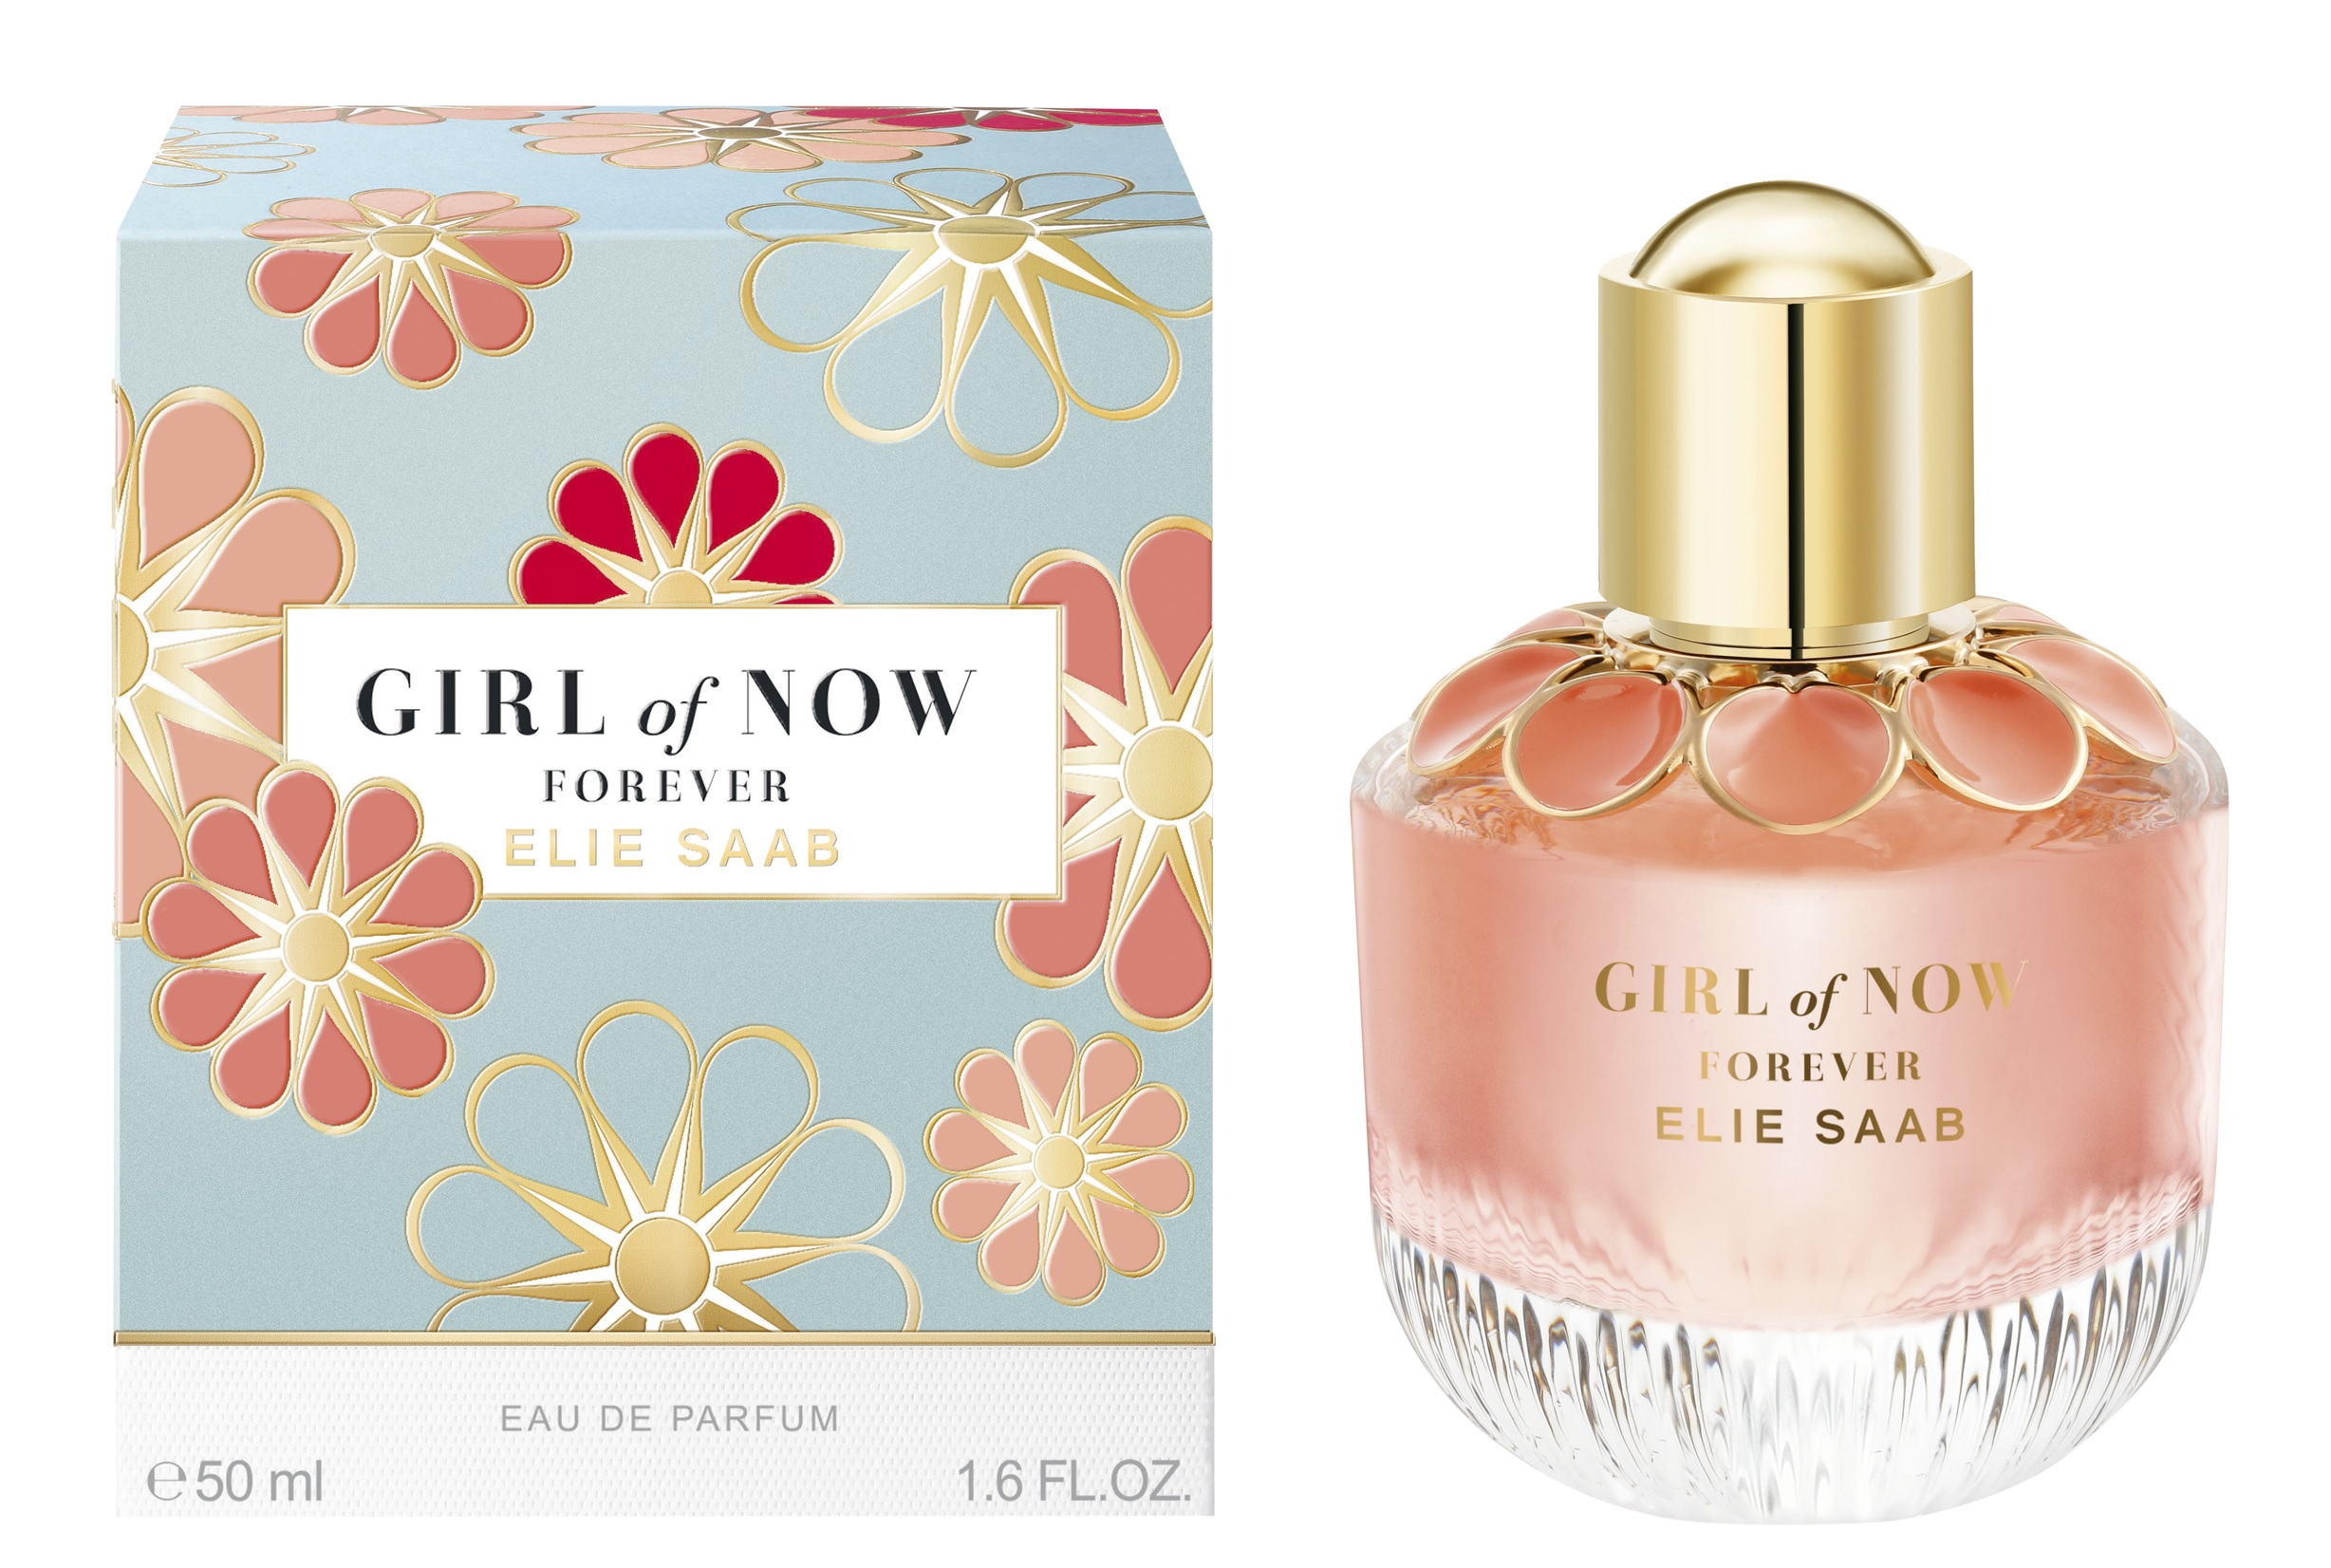 Girl Of Now Forever Elie Saab Perfume A New Fragrance For Women 2019